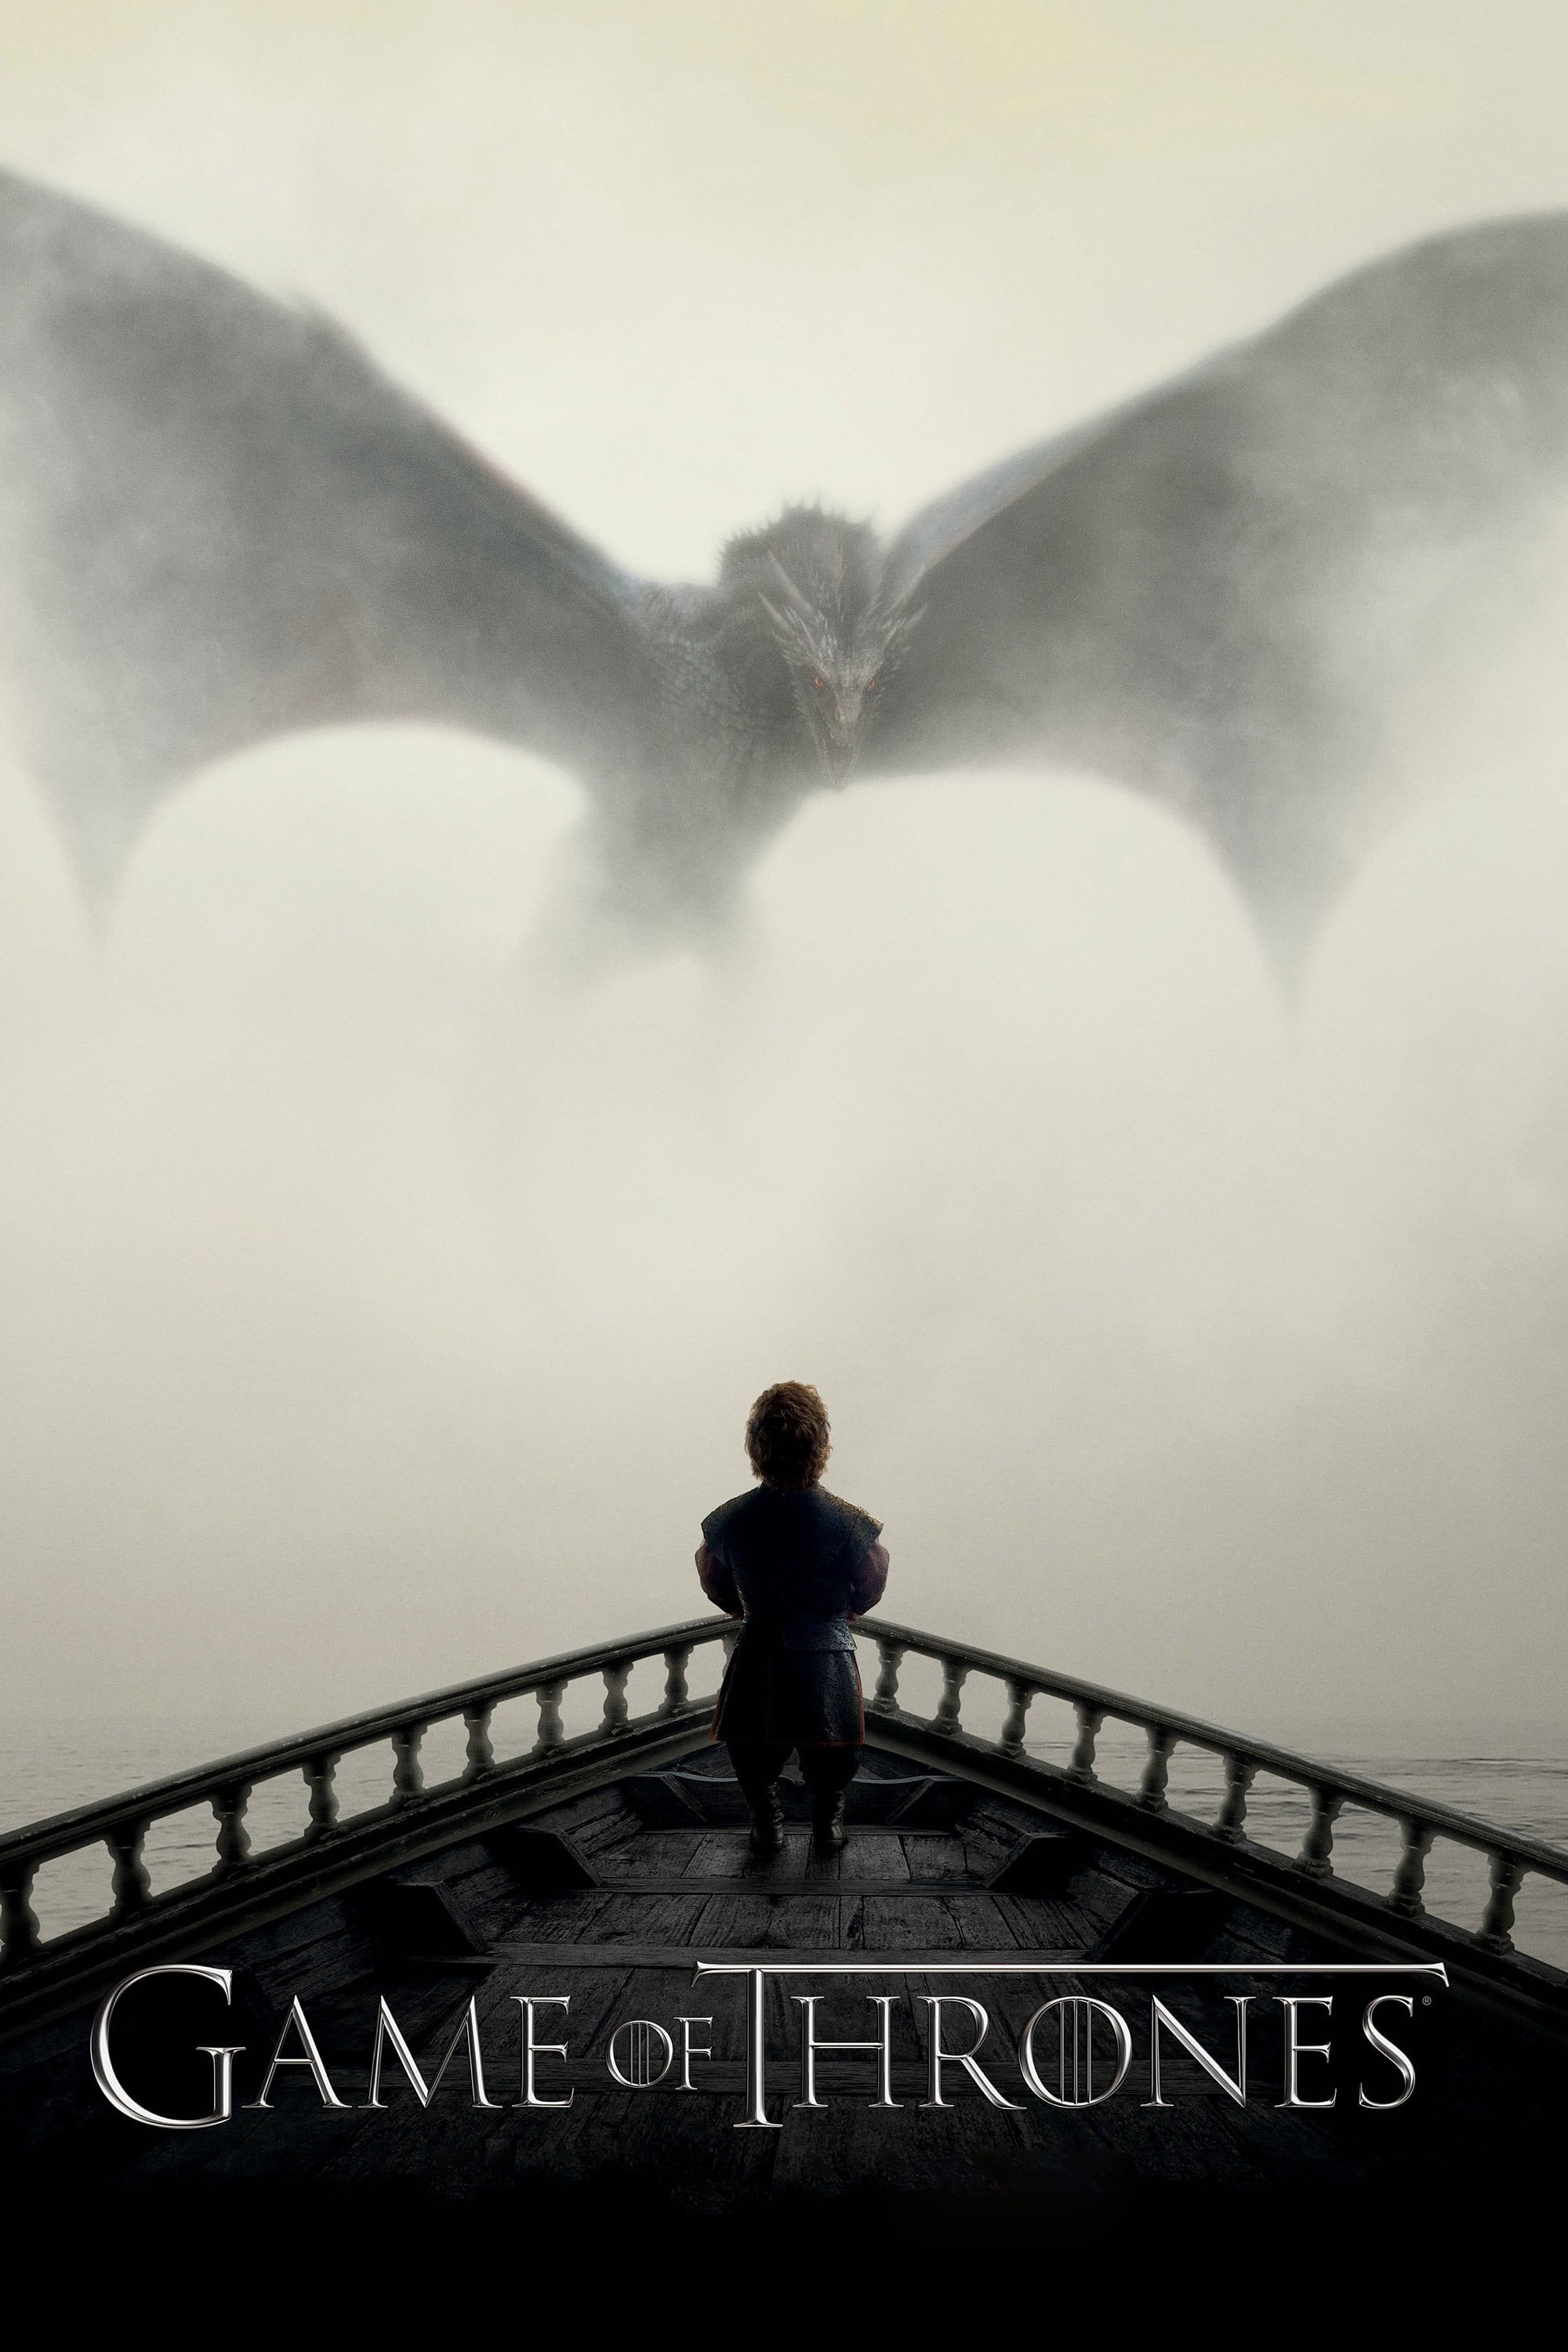 game of throne poster high quality HD printable wallpapers seaon 4 dragon and tyrion scene